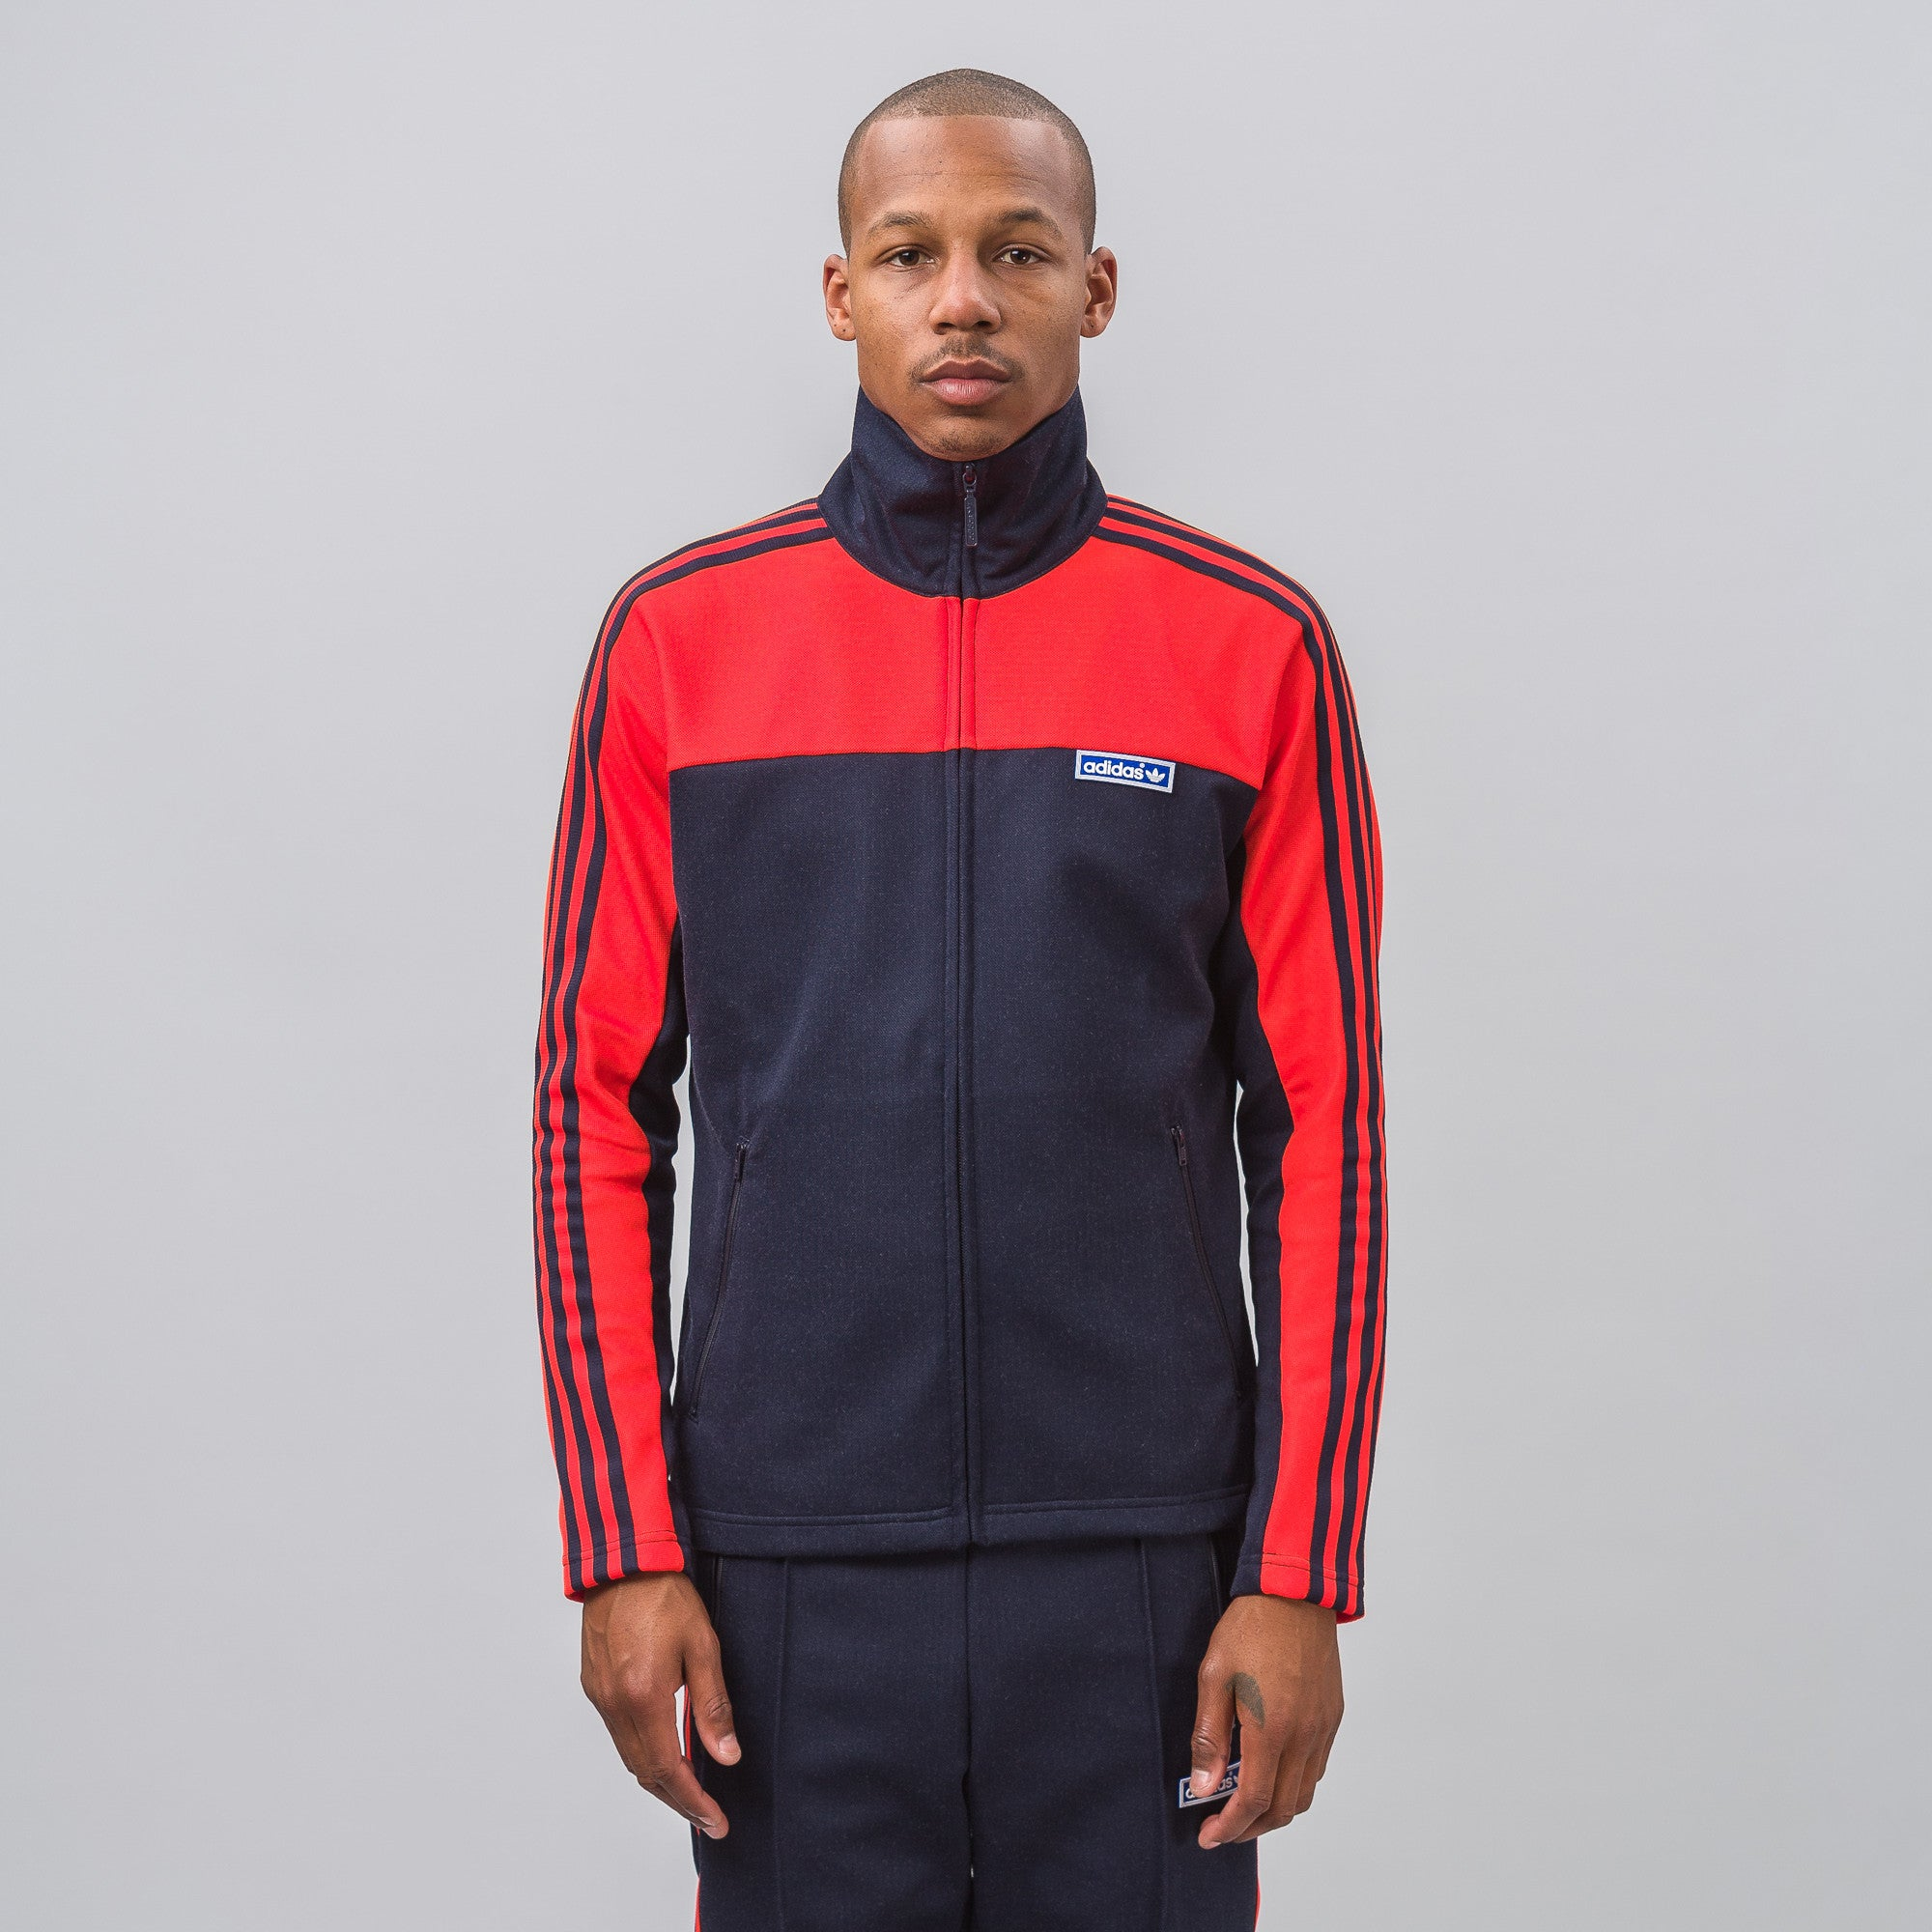 Made in Japan Track Suit